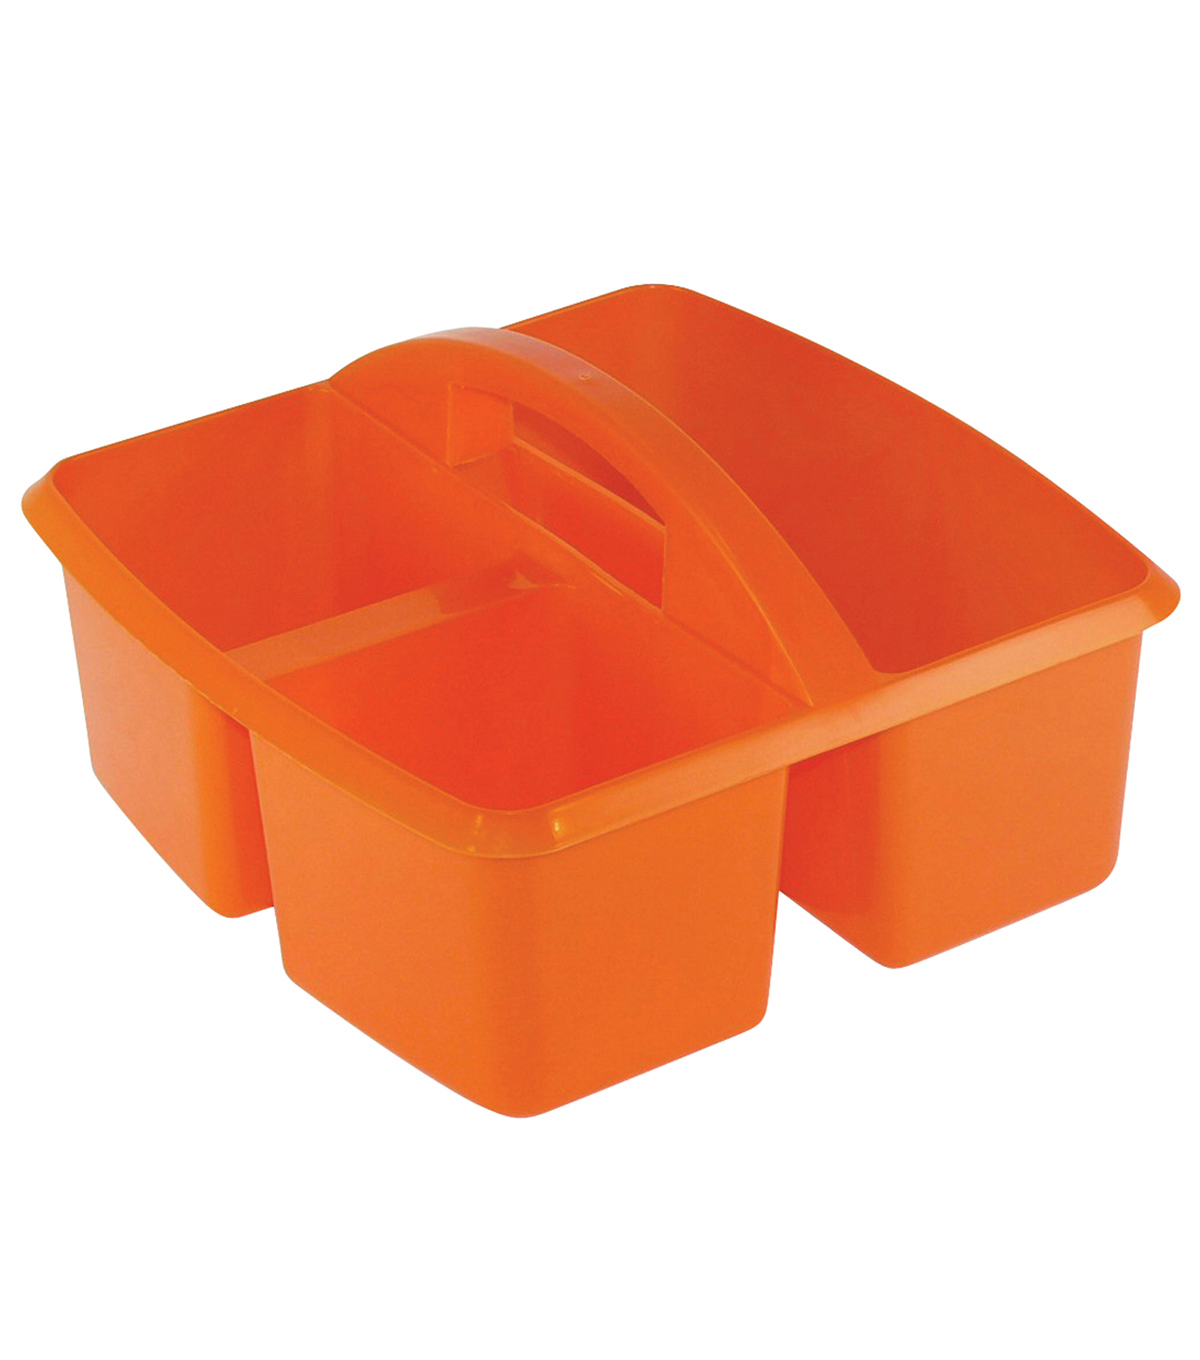 Romanoff Products Small Utility Caddy, Pack of 6, Orange